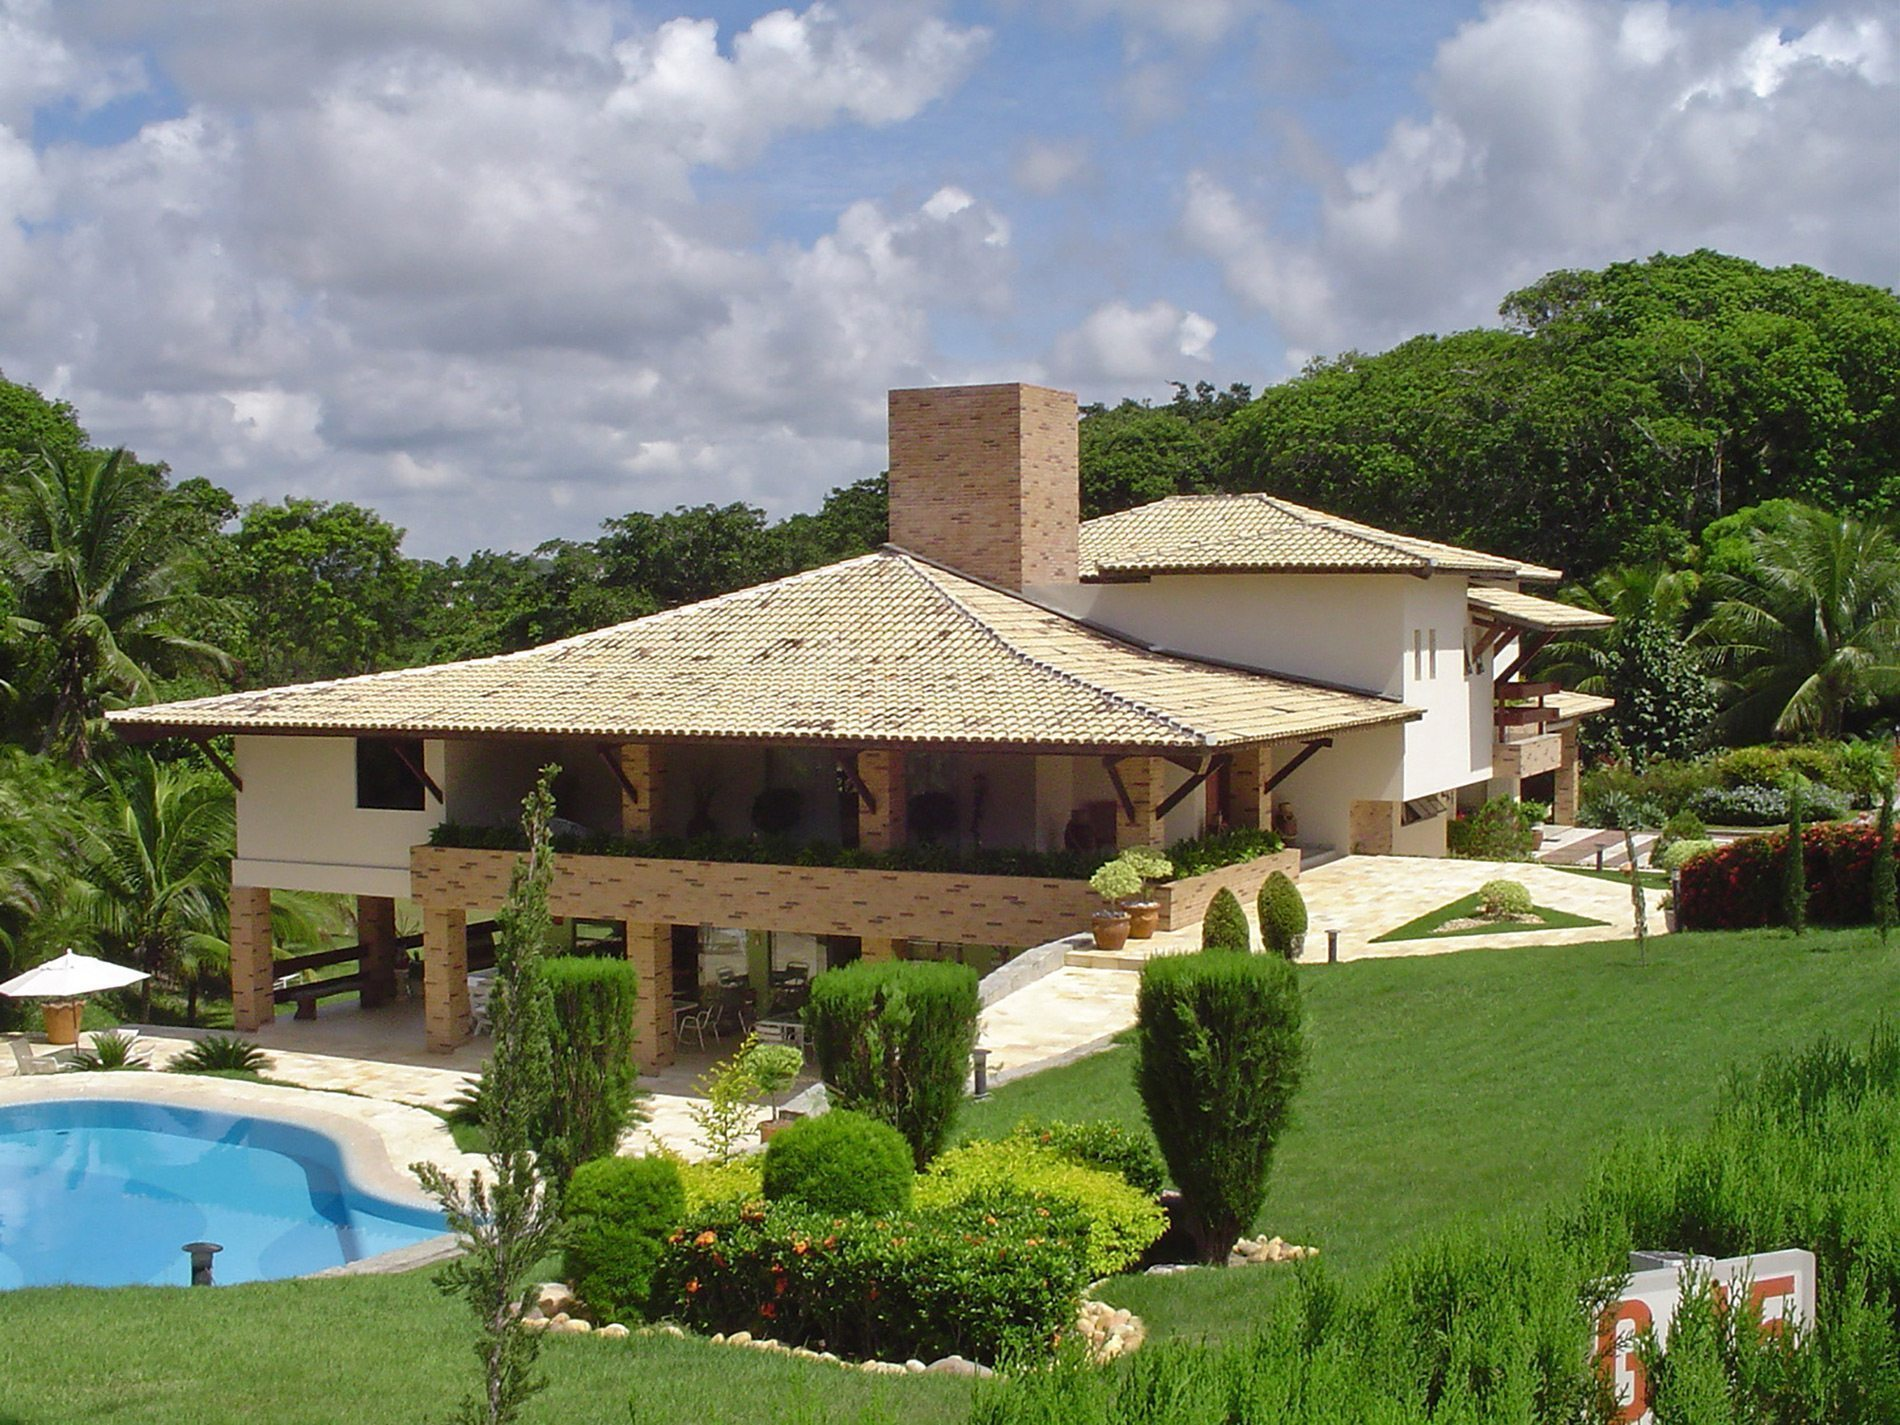 Stunning mansion with wonderful views for sale in Encontro das Águas